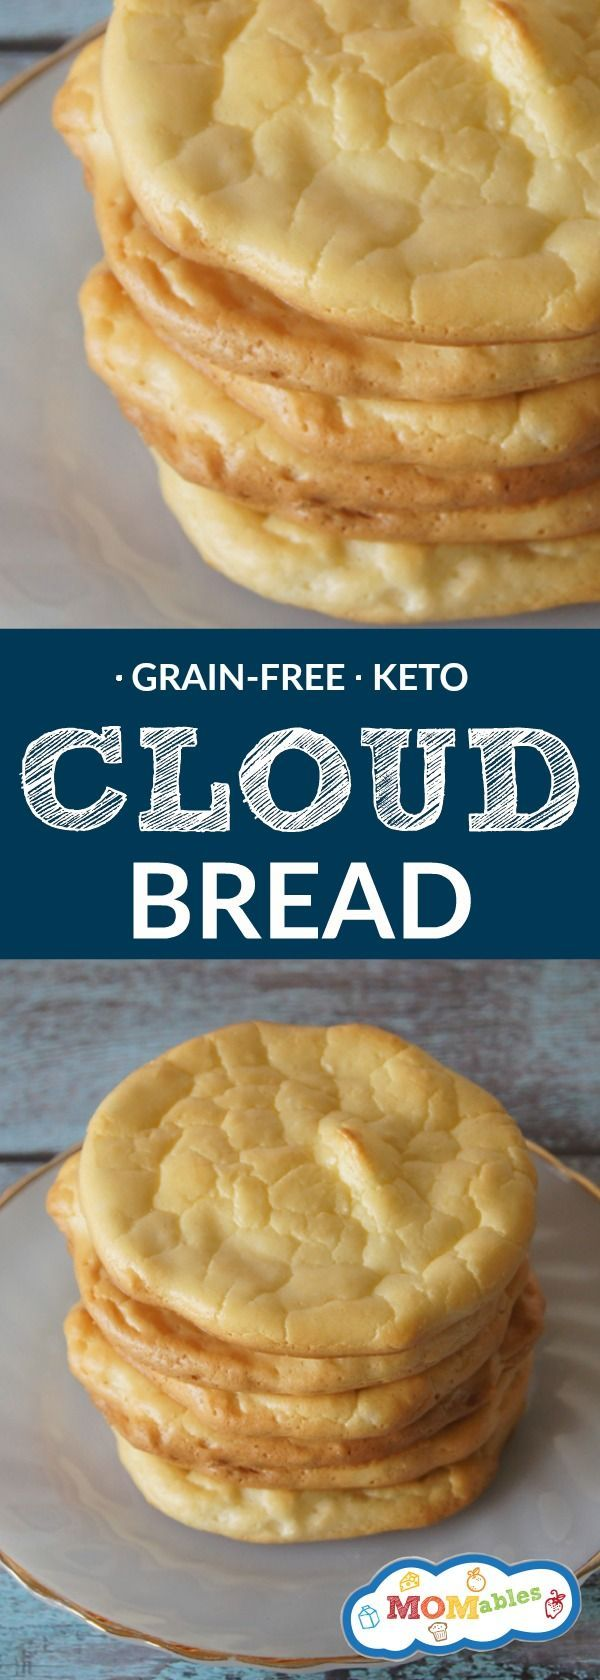 Low carb, gluten and grain free bread, made with only four ingredients! Use it for sandwiches, burgers, or toast! This is the perfect keto and grain-free recipe.